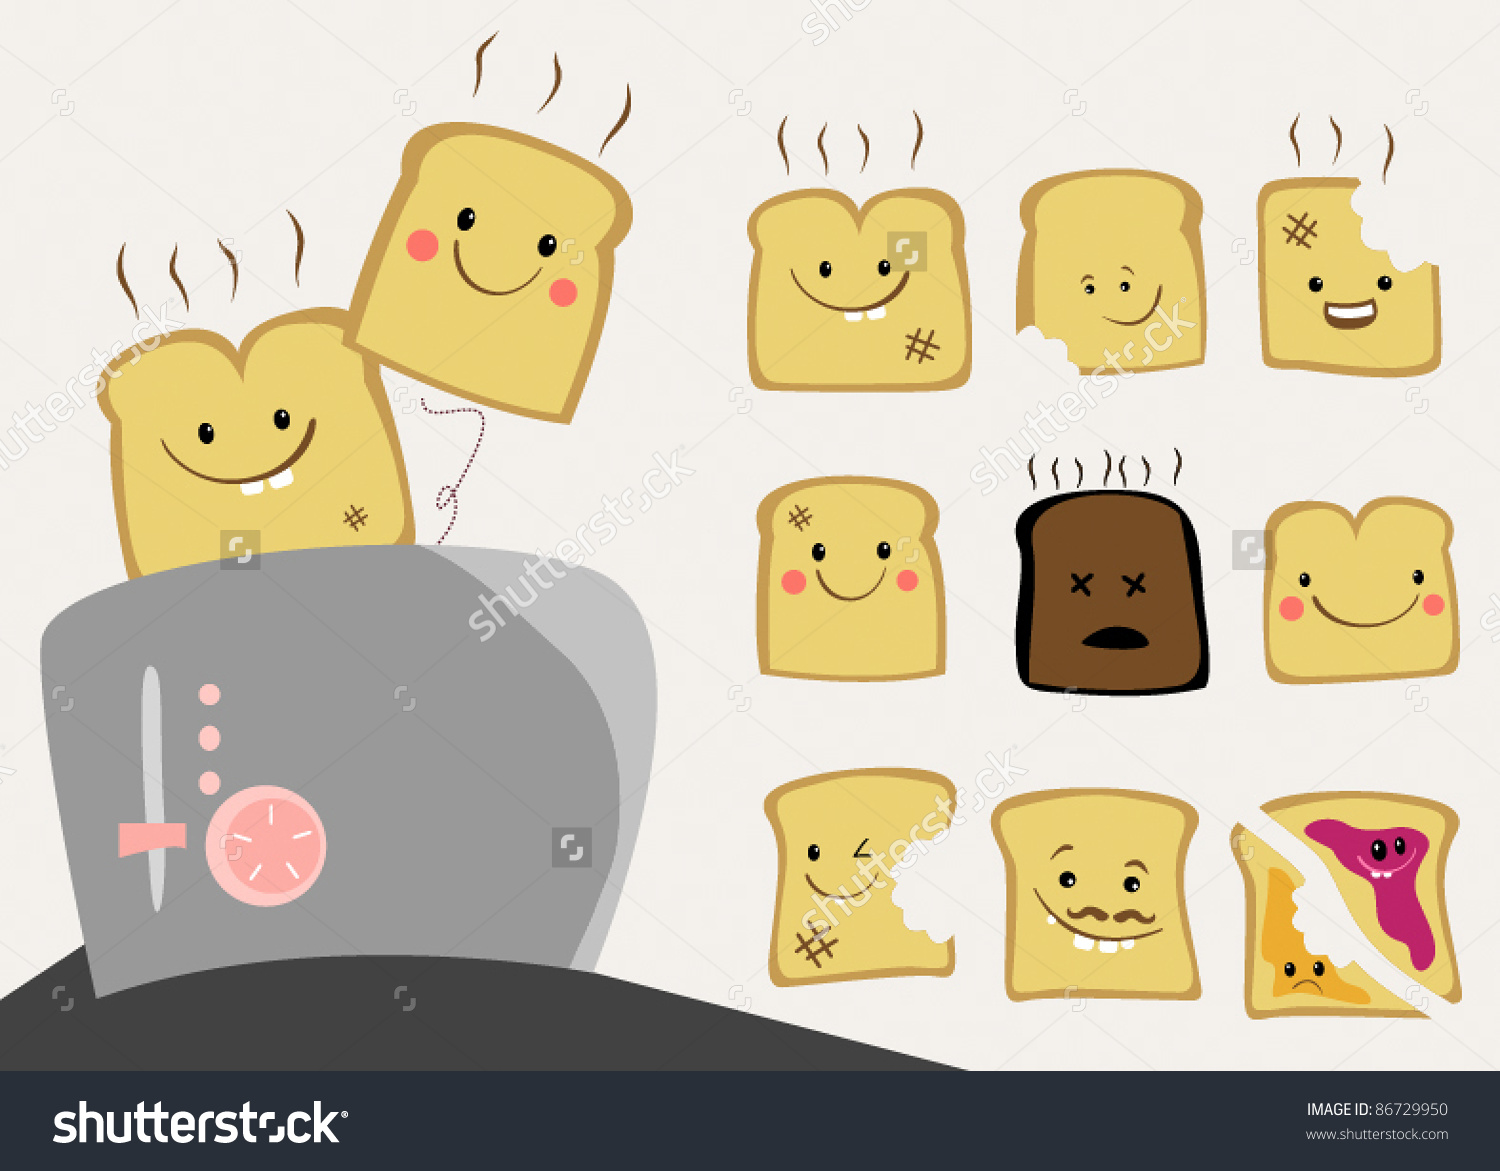 Cute Toast Character Set Stock Vector 86729950.